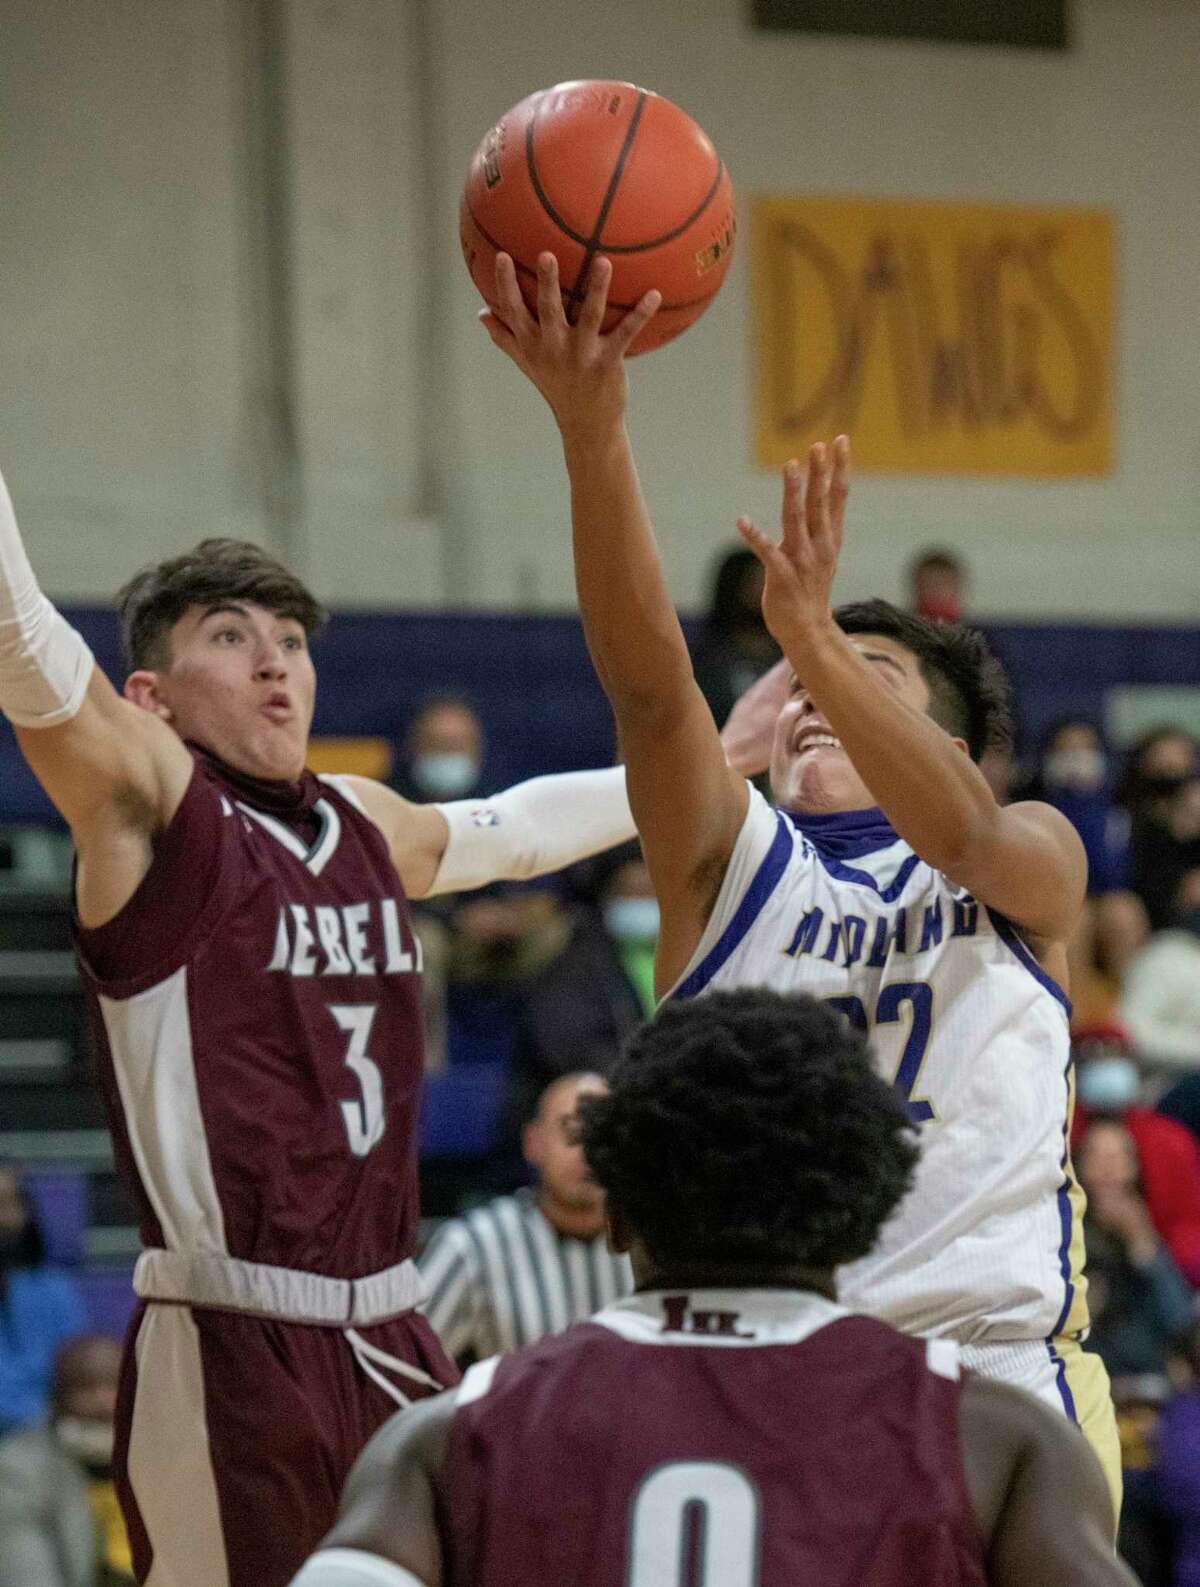 Midland High's Jaime Puentes puts up a shot as Lee High's Nate Suttle looks to block 01/05/2021 at the Midland High gym. Tim Fischer/Reporter-Telegram